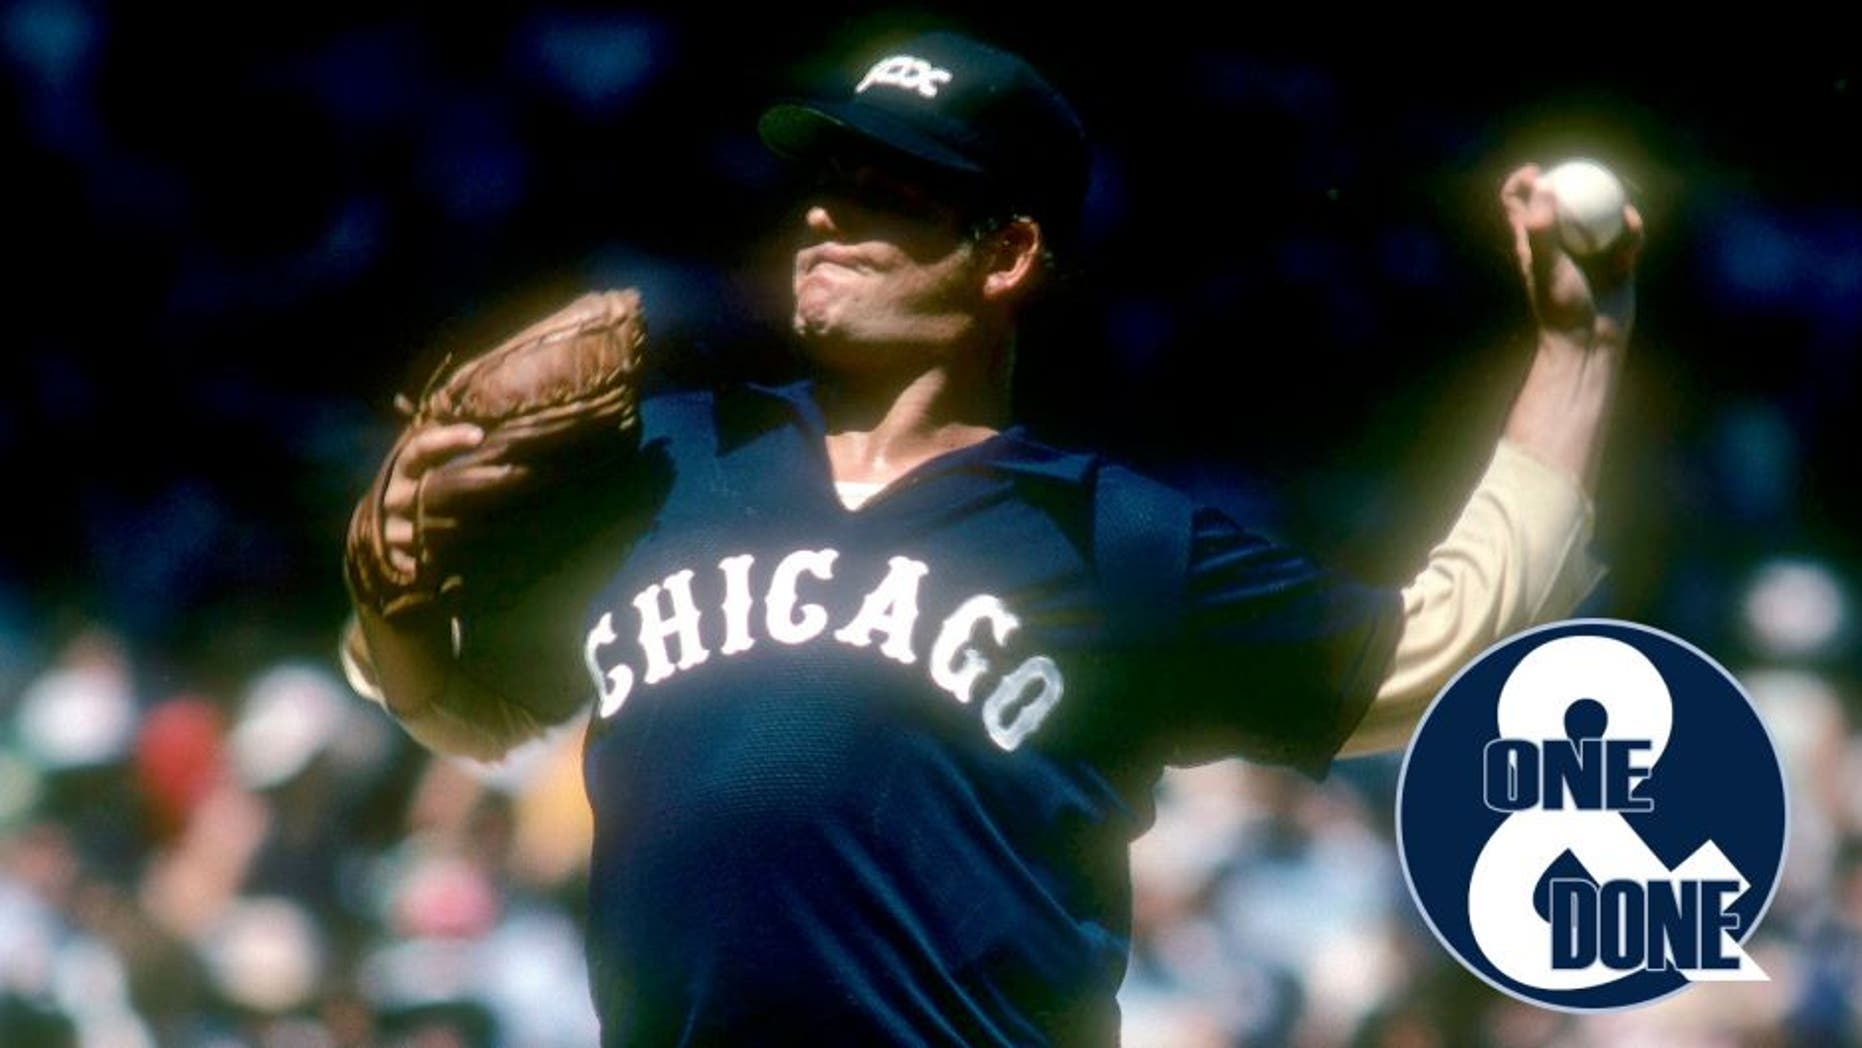 NEW YORK - CIRCA 1978: Pitcher Wilbur Wood #28 of the Chicago White Sox pitches against the New York Yankees during a Major League Baseball game circa 1978 at Yankee Stadium in the Bronx Borough of New York City. Wood played for the White Sox from 1967-78. (Photo by Focus on Sport/Getty Images)